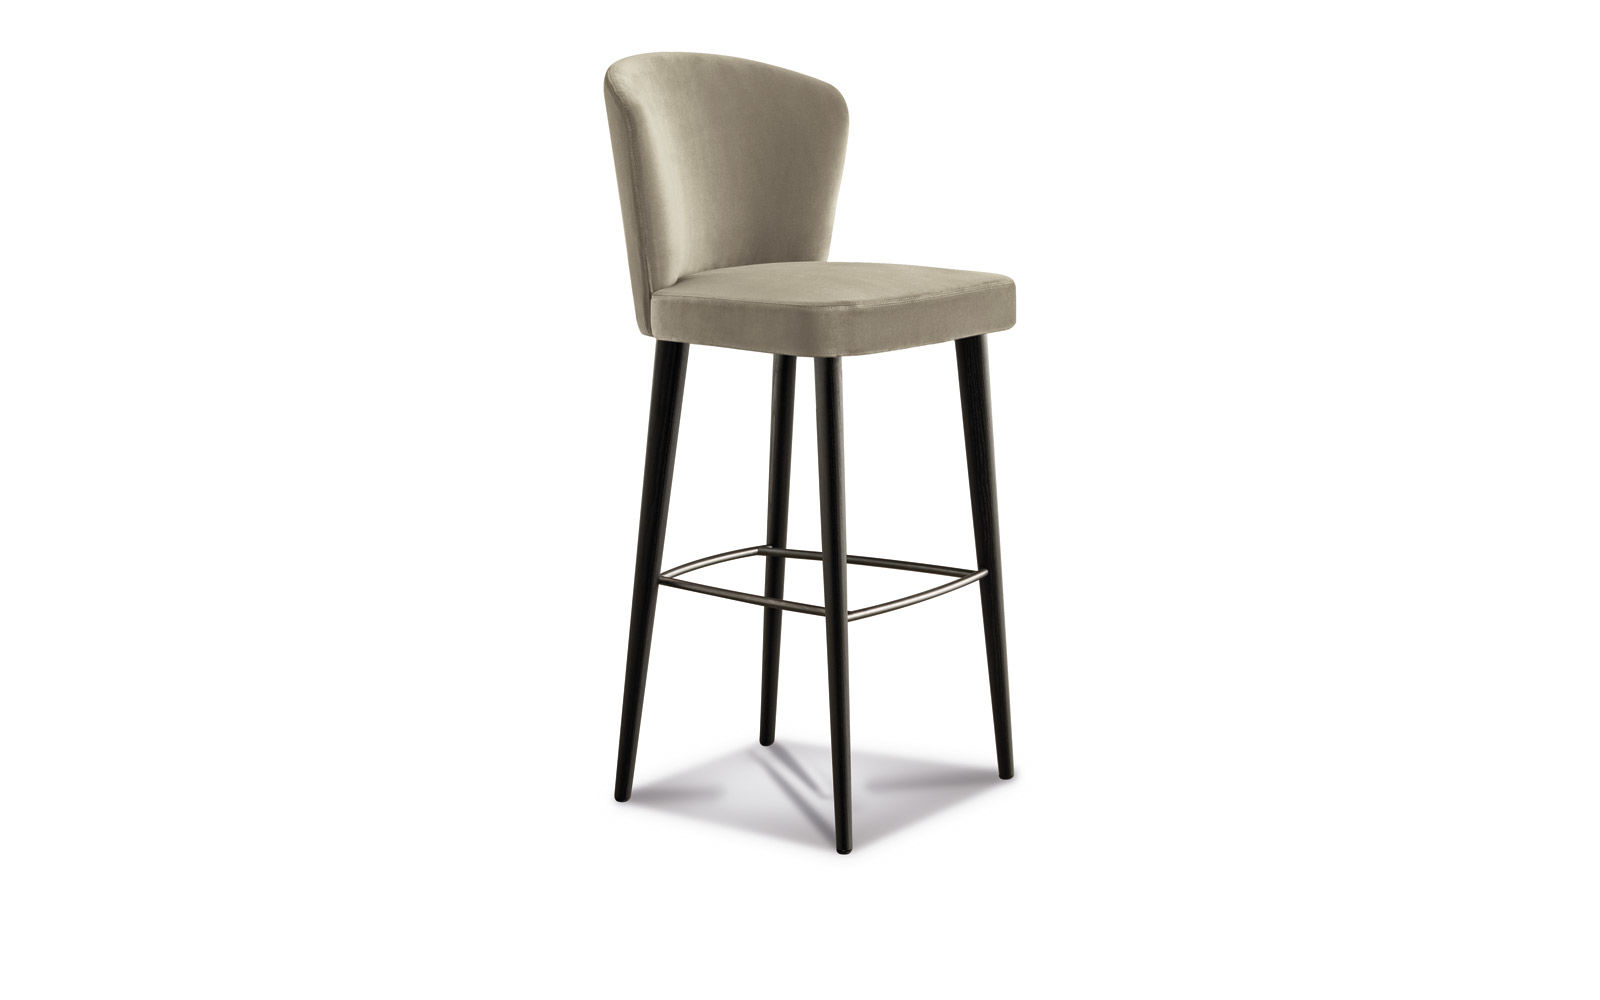 Stool Chair Chairs En Aston Stool